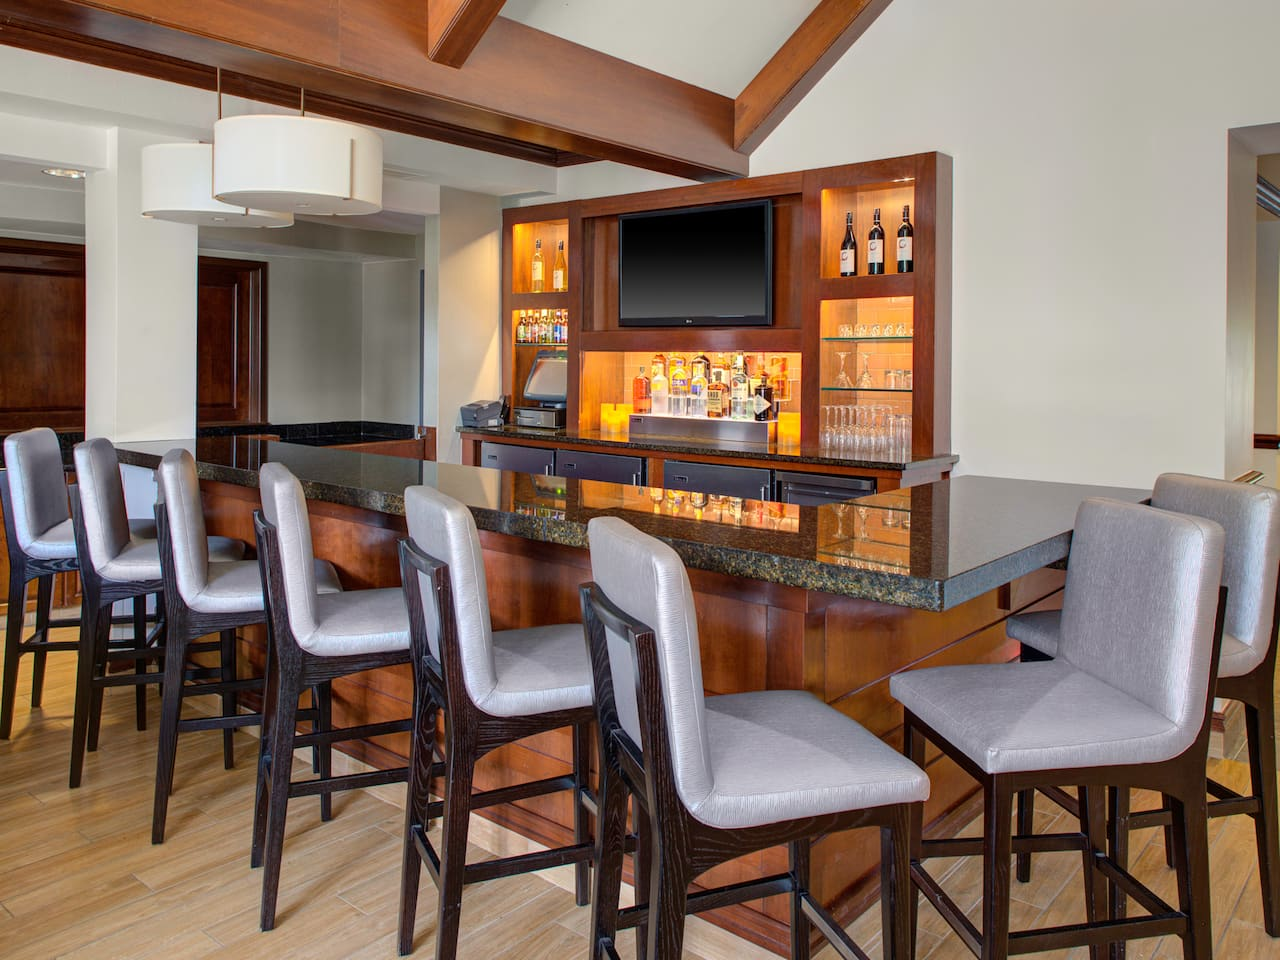 Hyatt House Bar In Parsippany, New Jersey